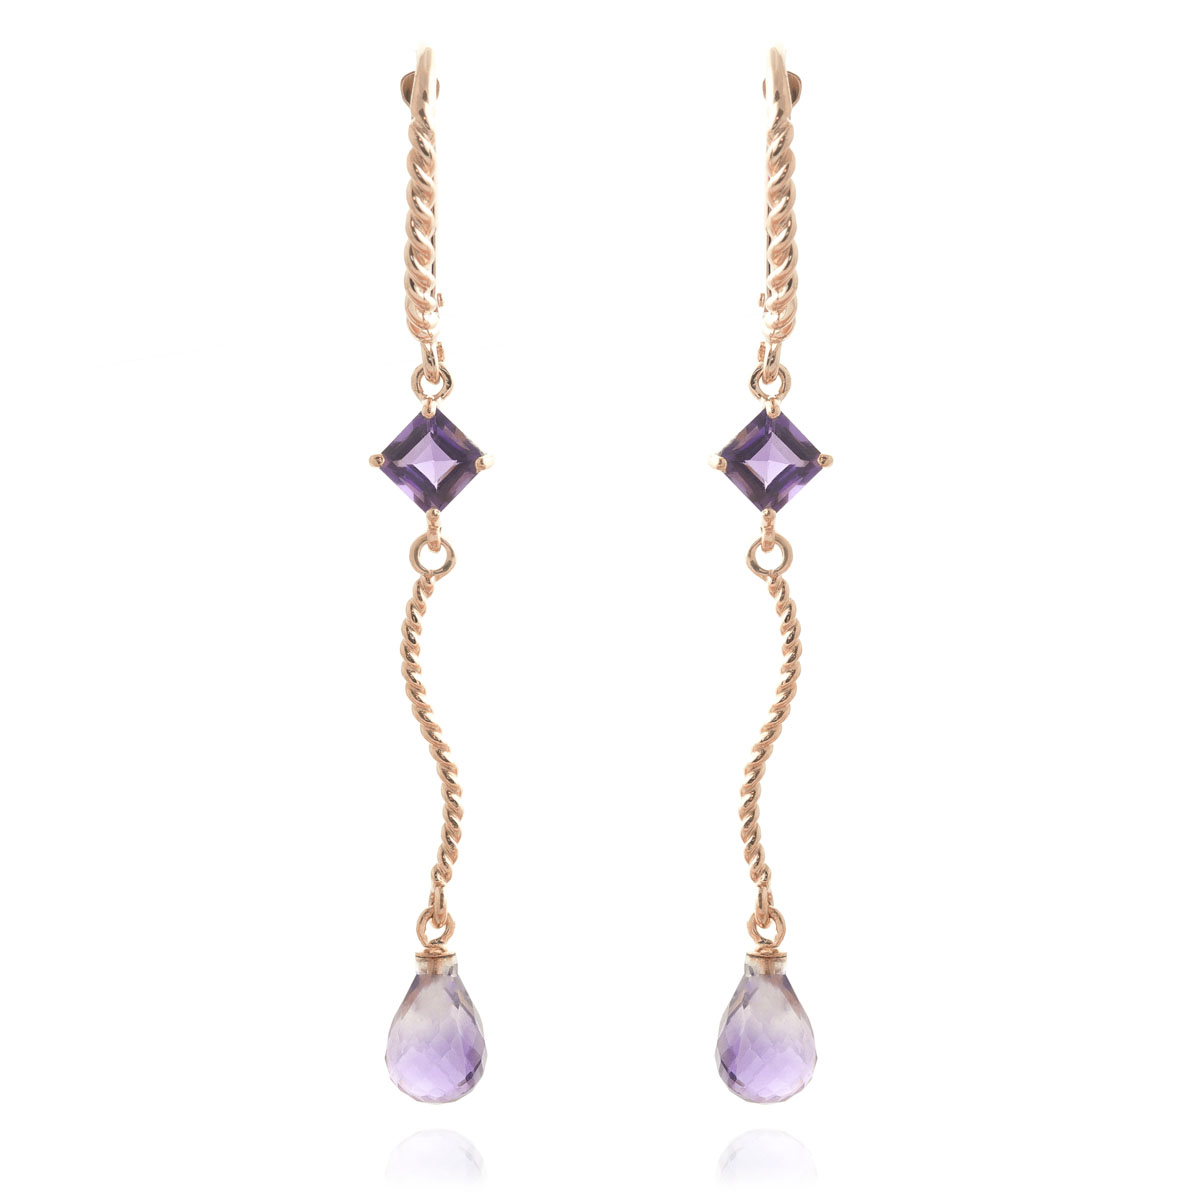 Amethyst Twist Drop Earrings 3.5 ctw in 9ct Rose Gold